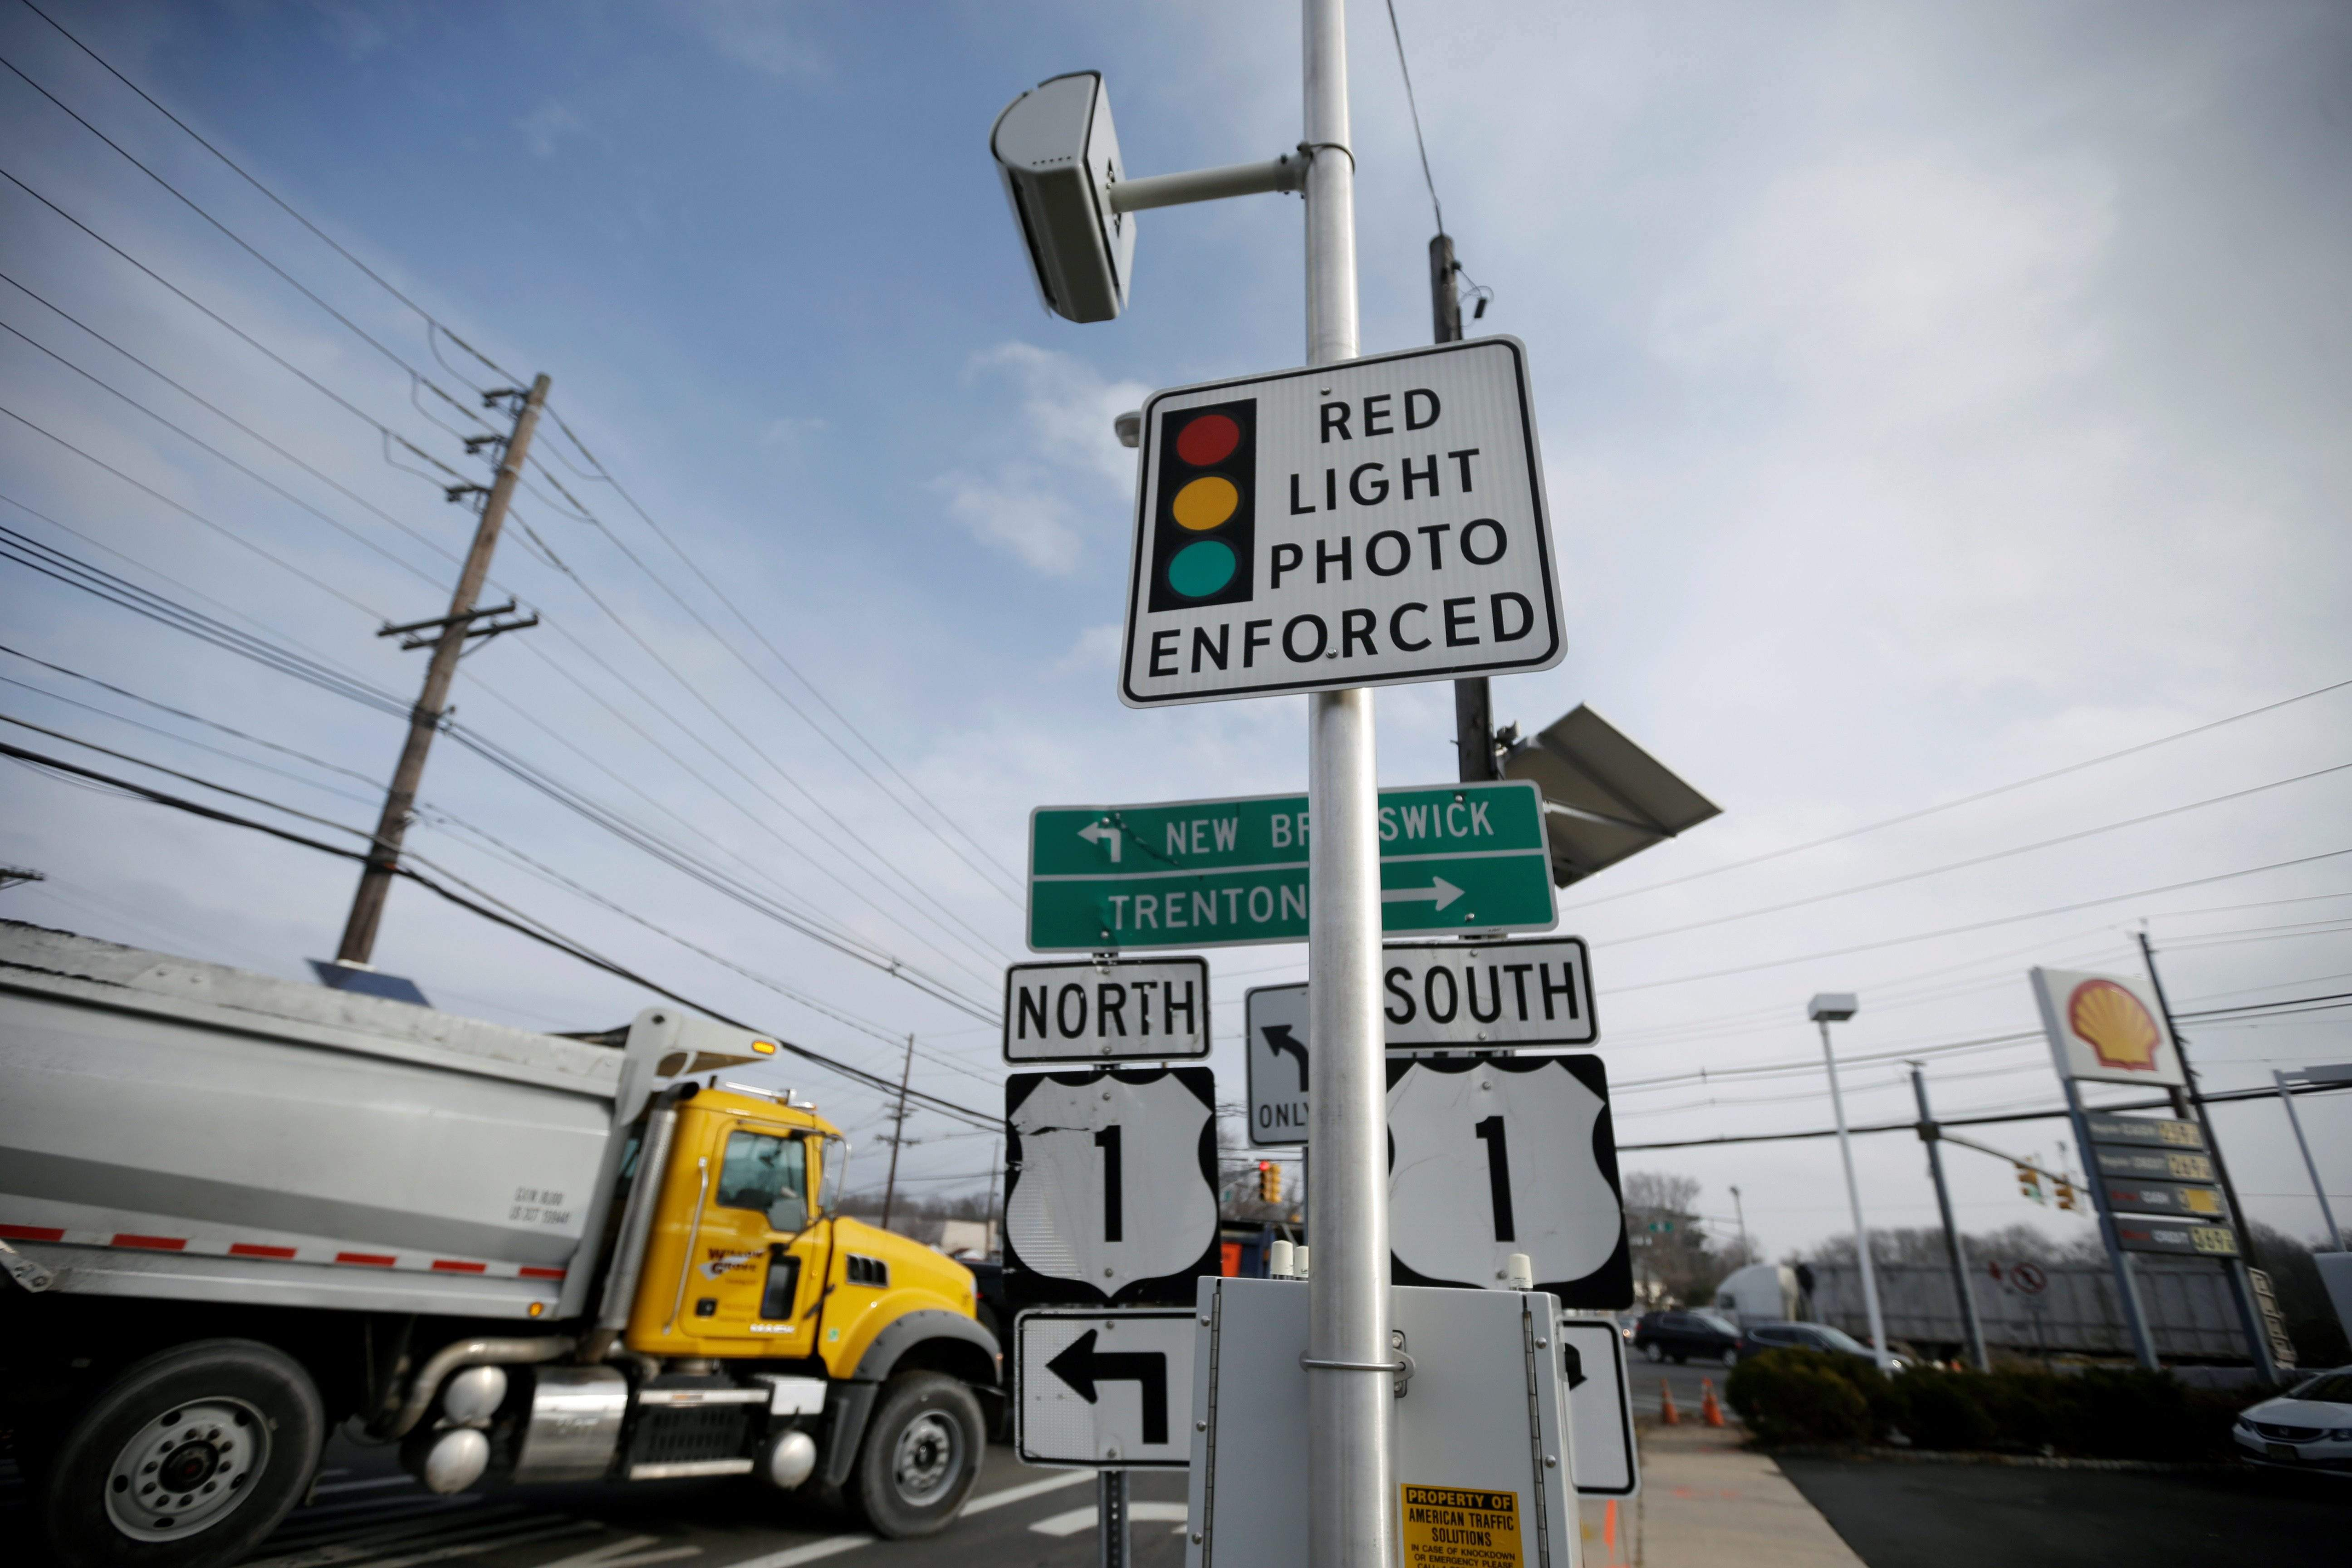 ... Study Found That Red Light Cameras Can Not Only Cut Down On The Number  Of Fatalities At Intersections, But They Also Help Curb Other Traffic  Violations.